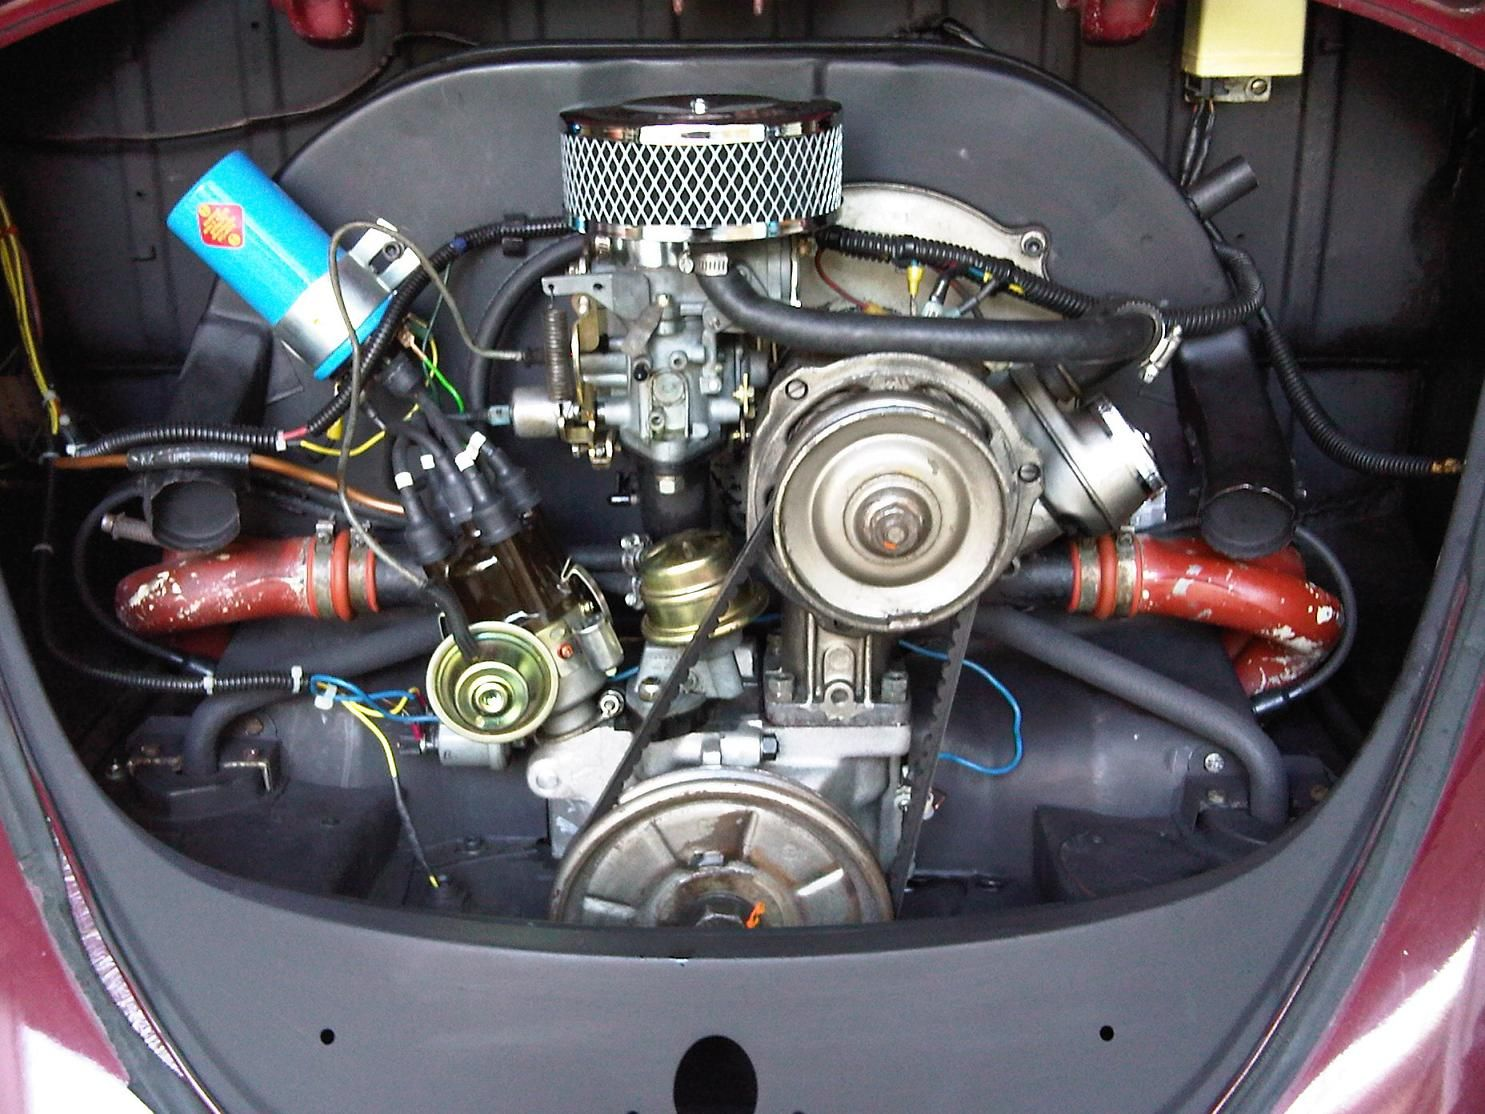 hight resolution of clean 1600cc engine in a standard bug the progressive dual weber carburetor is a nice